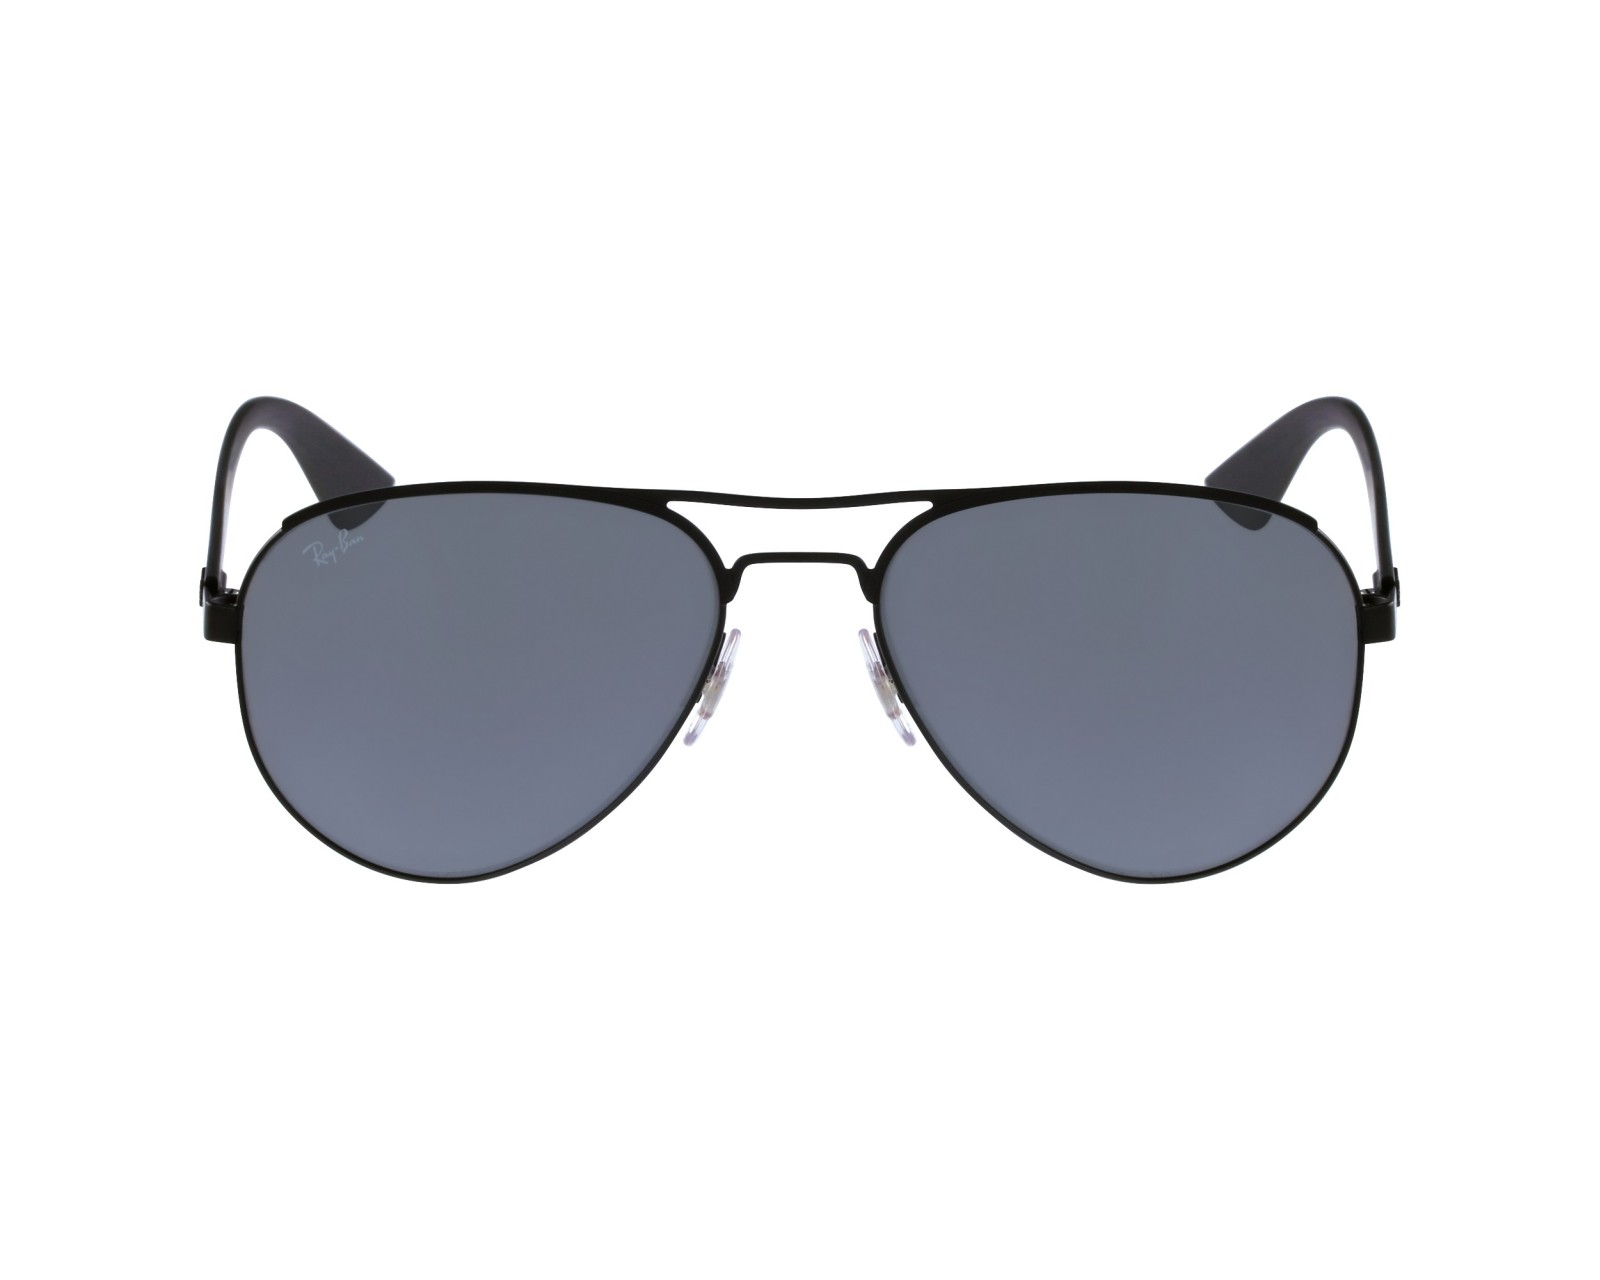 435a4f71158 thumbnail Sunglasses Ray-Ban RB-3523 006 6G - Black profile view